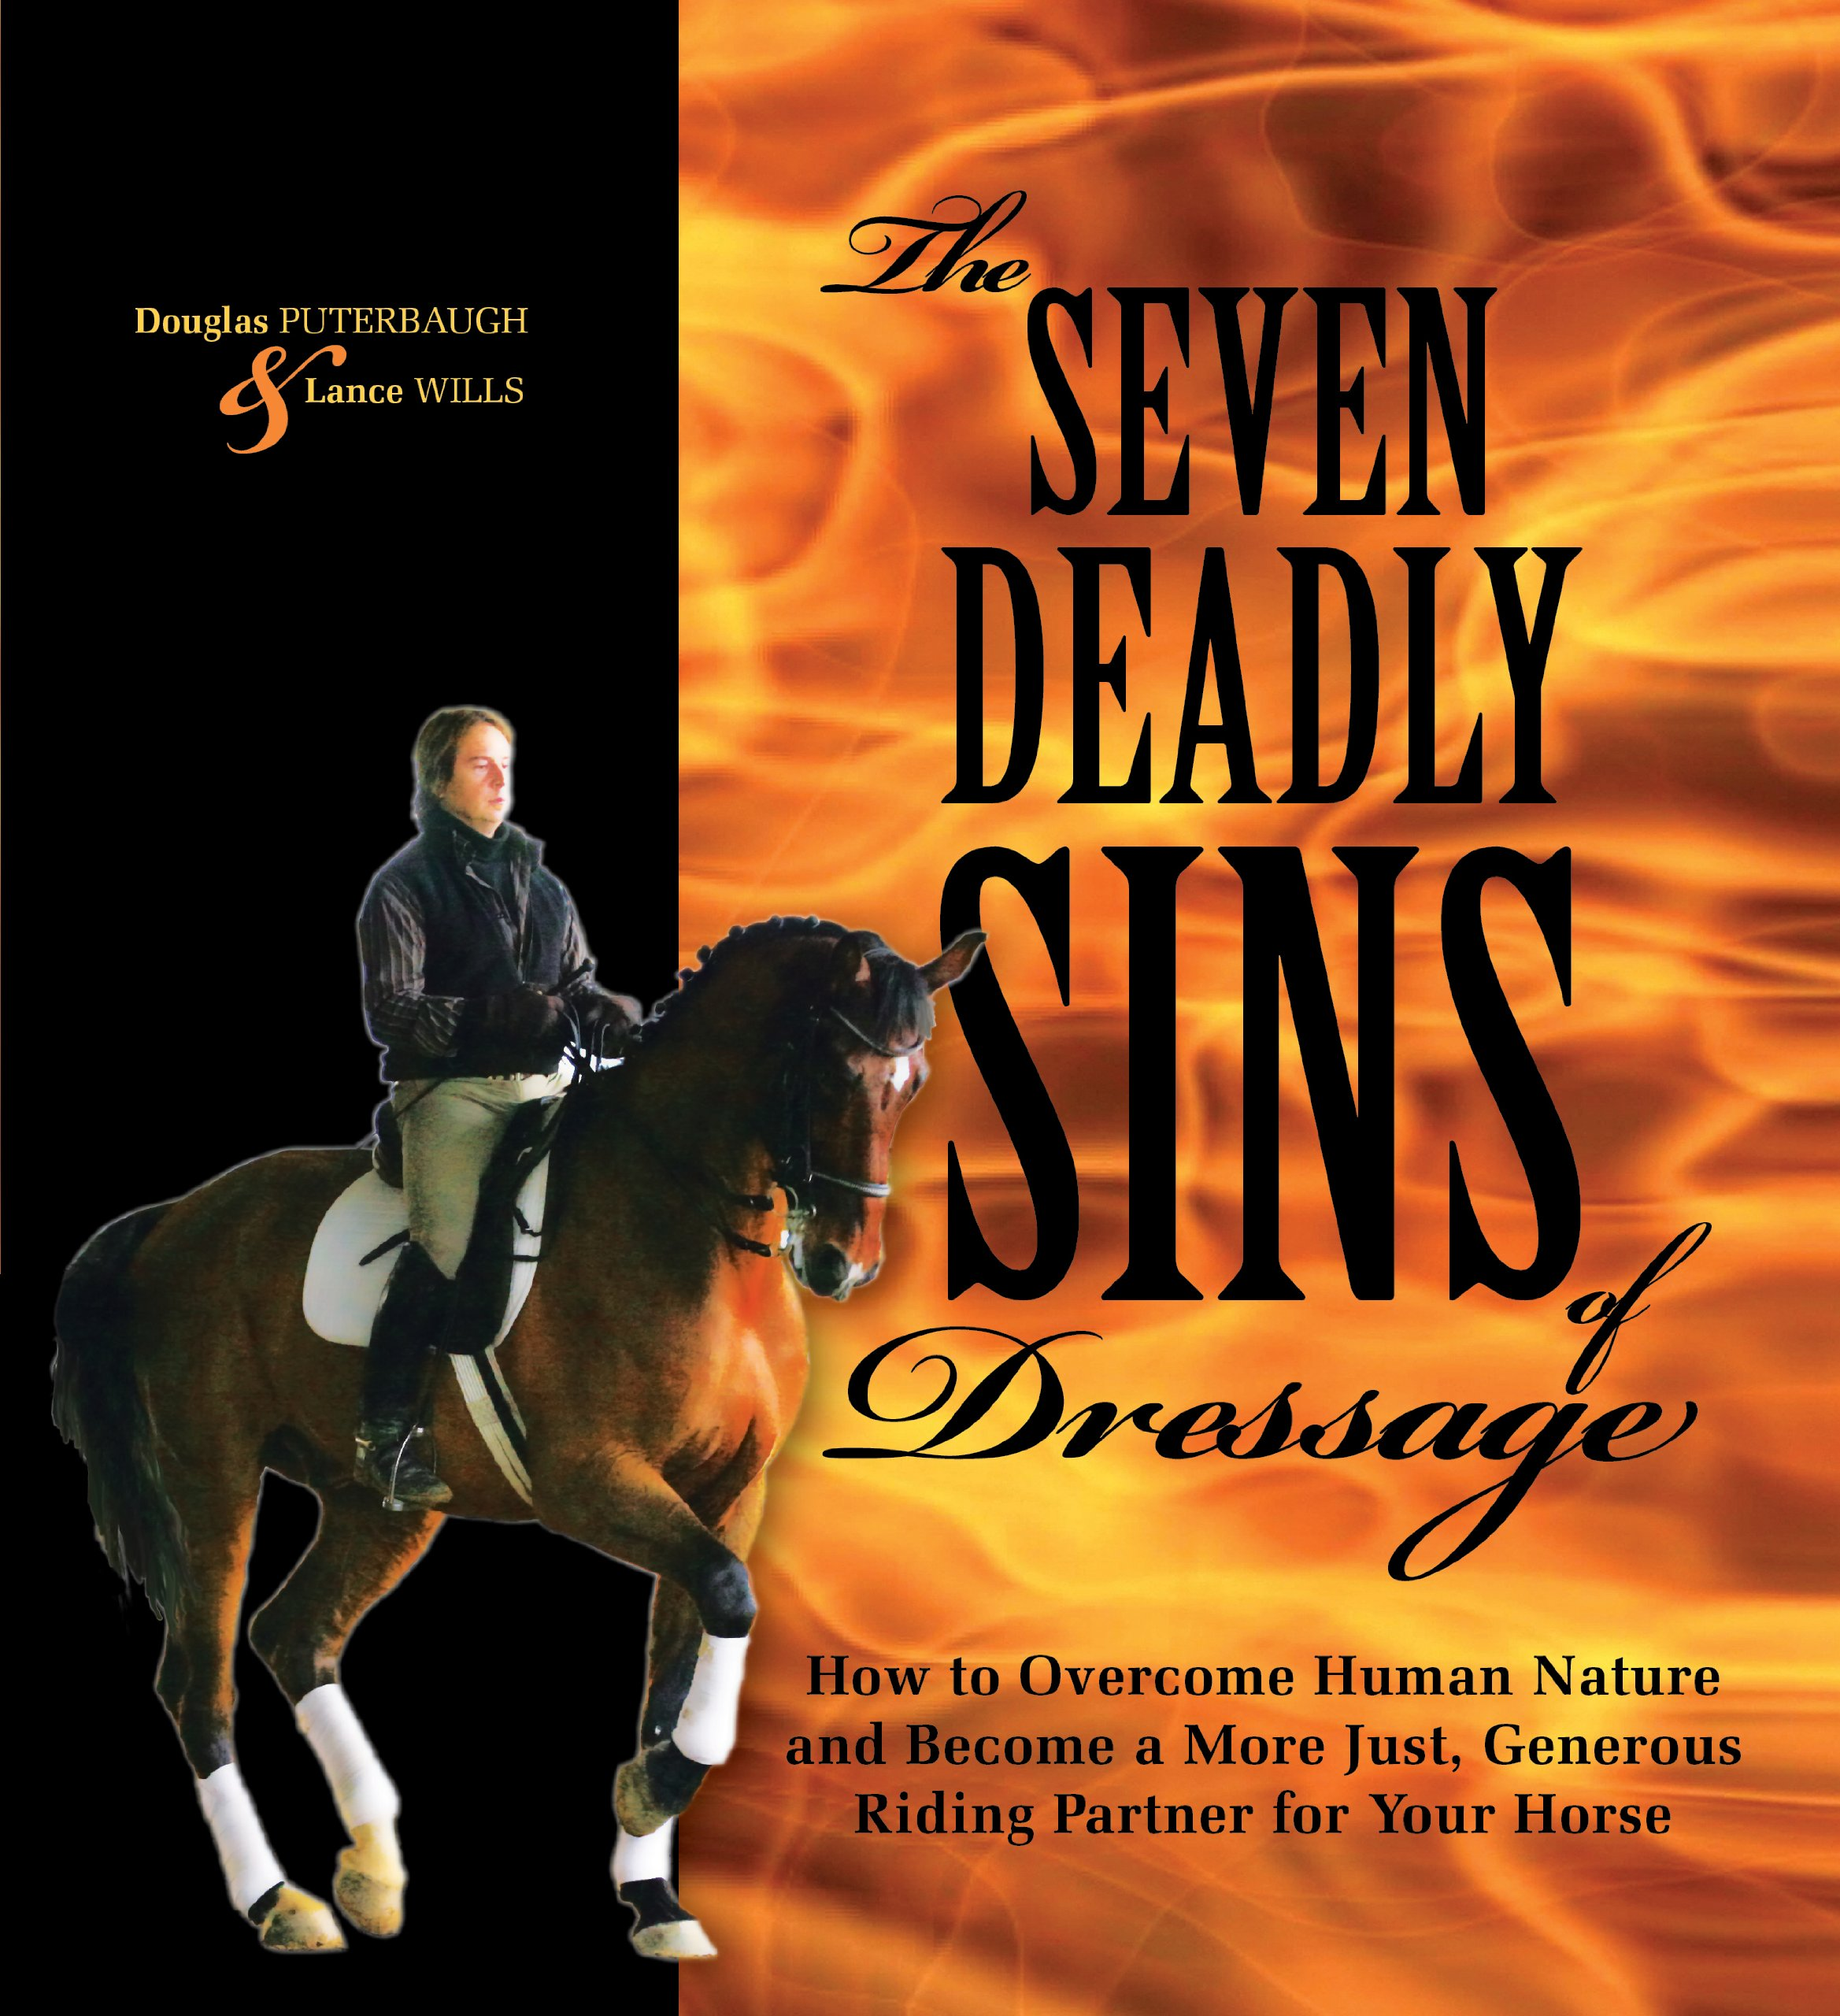 The Seven Deadly Sins Of Dressage: How To Overcome Human Nature And Become A More Just, Generous Riding Partner For Your H...